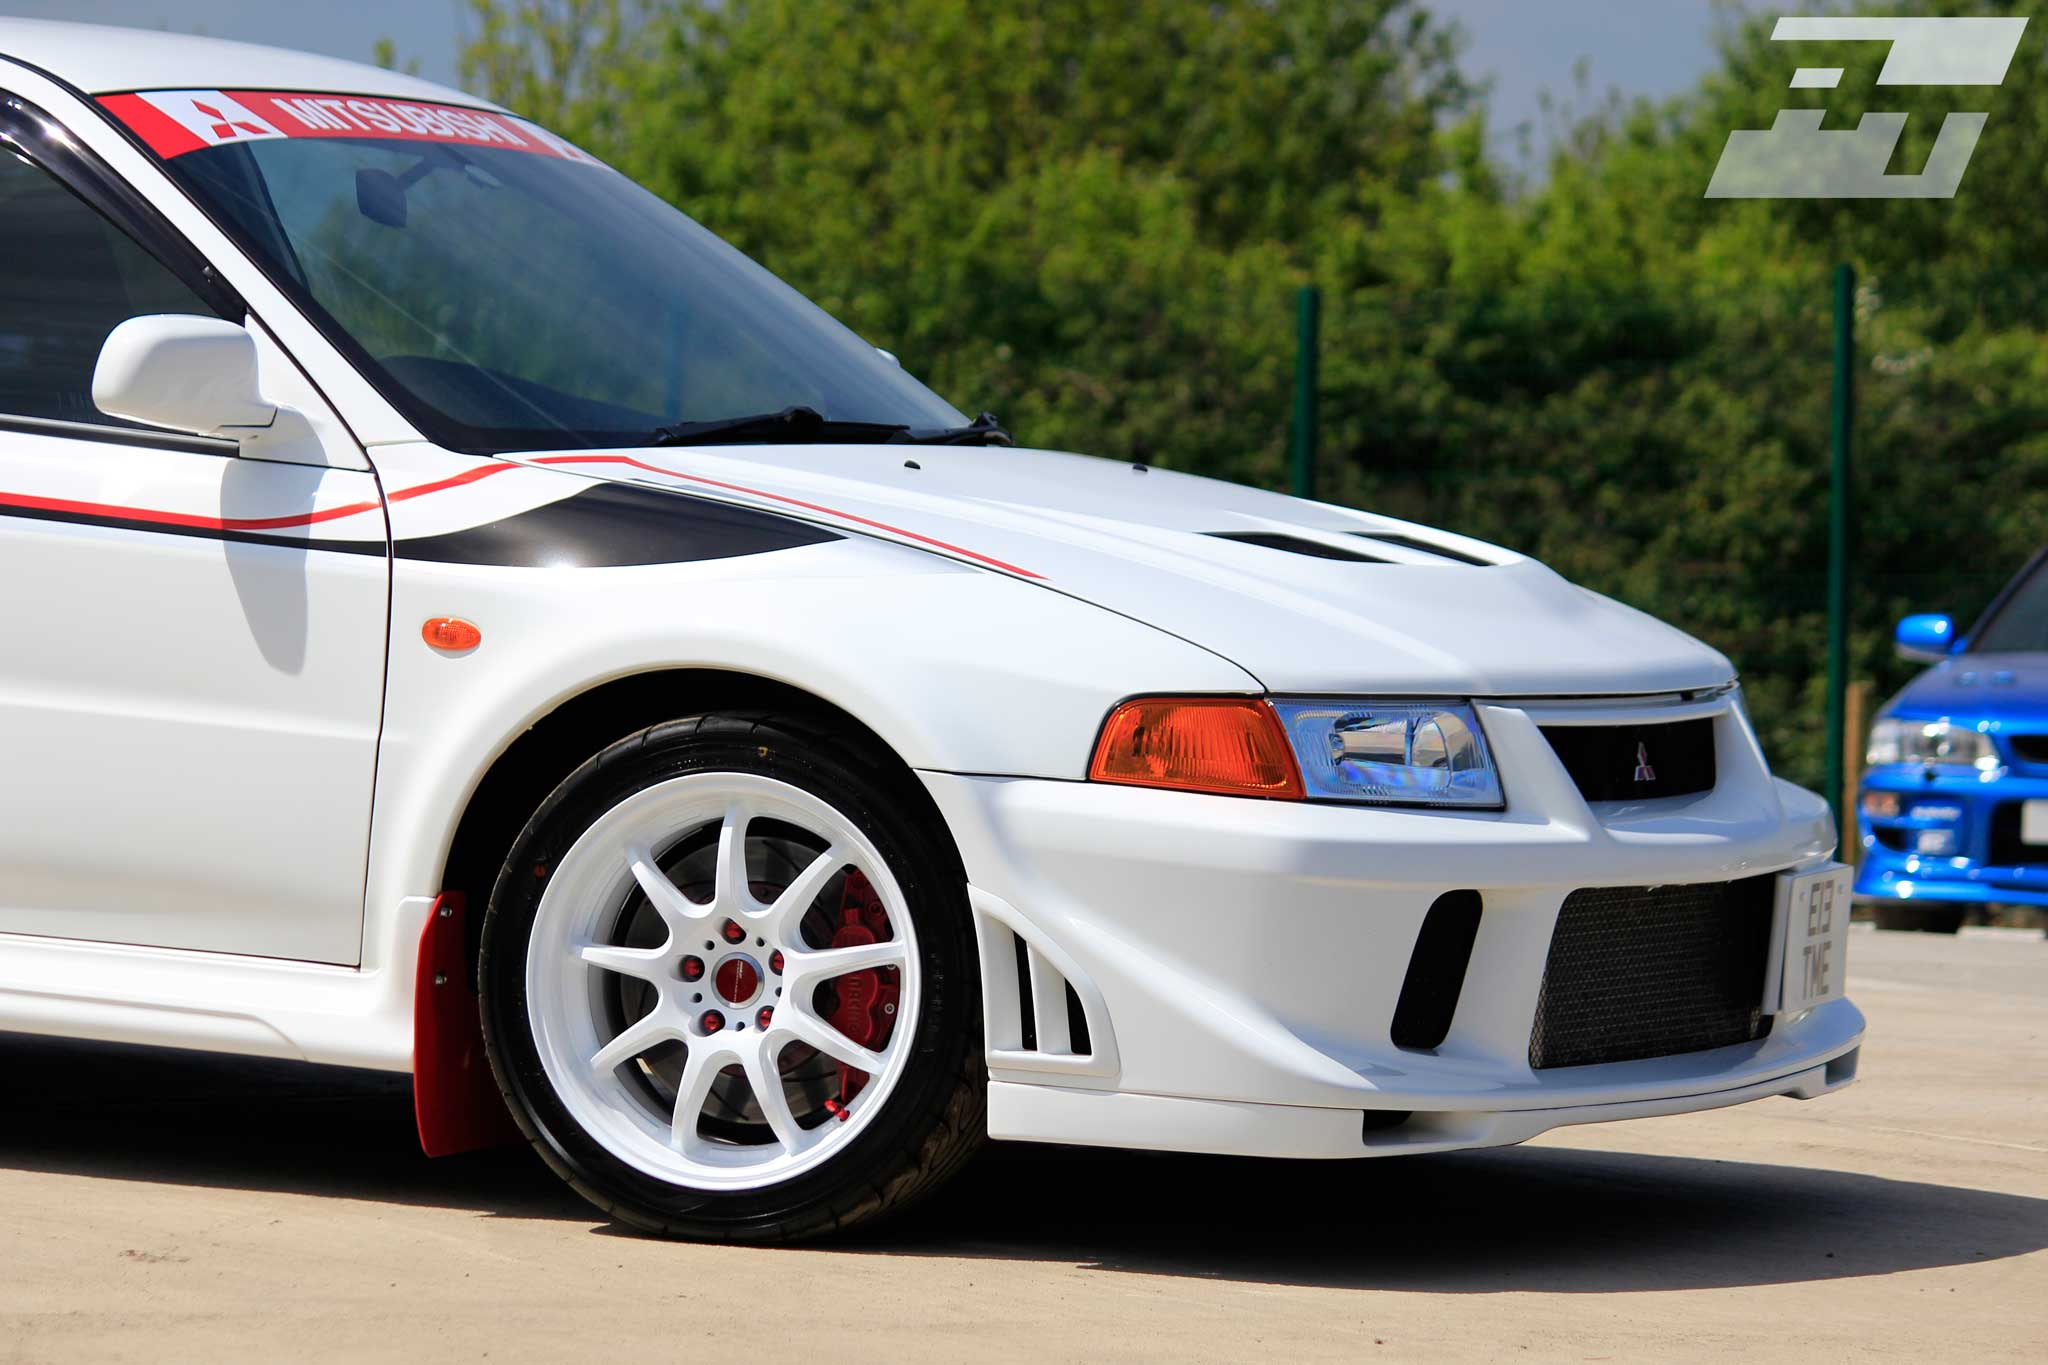 Steve's Evo VI TME Build